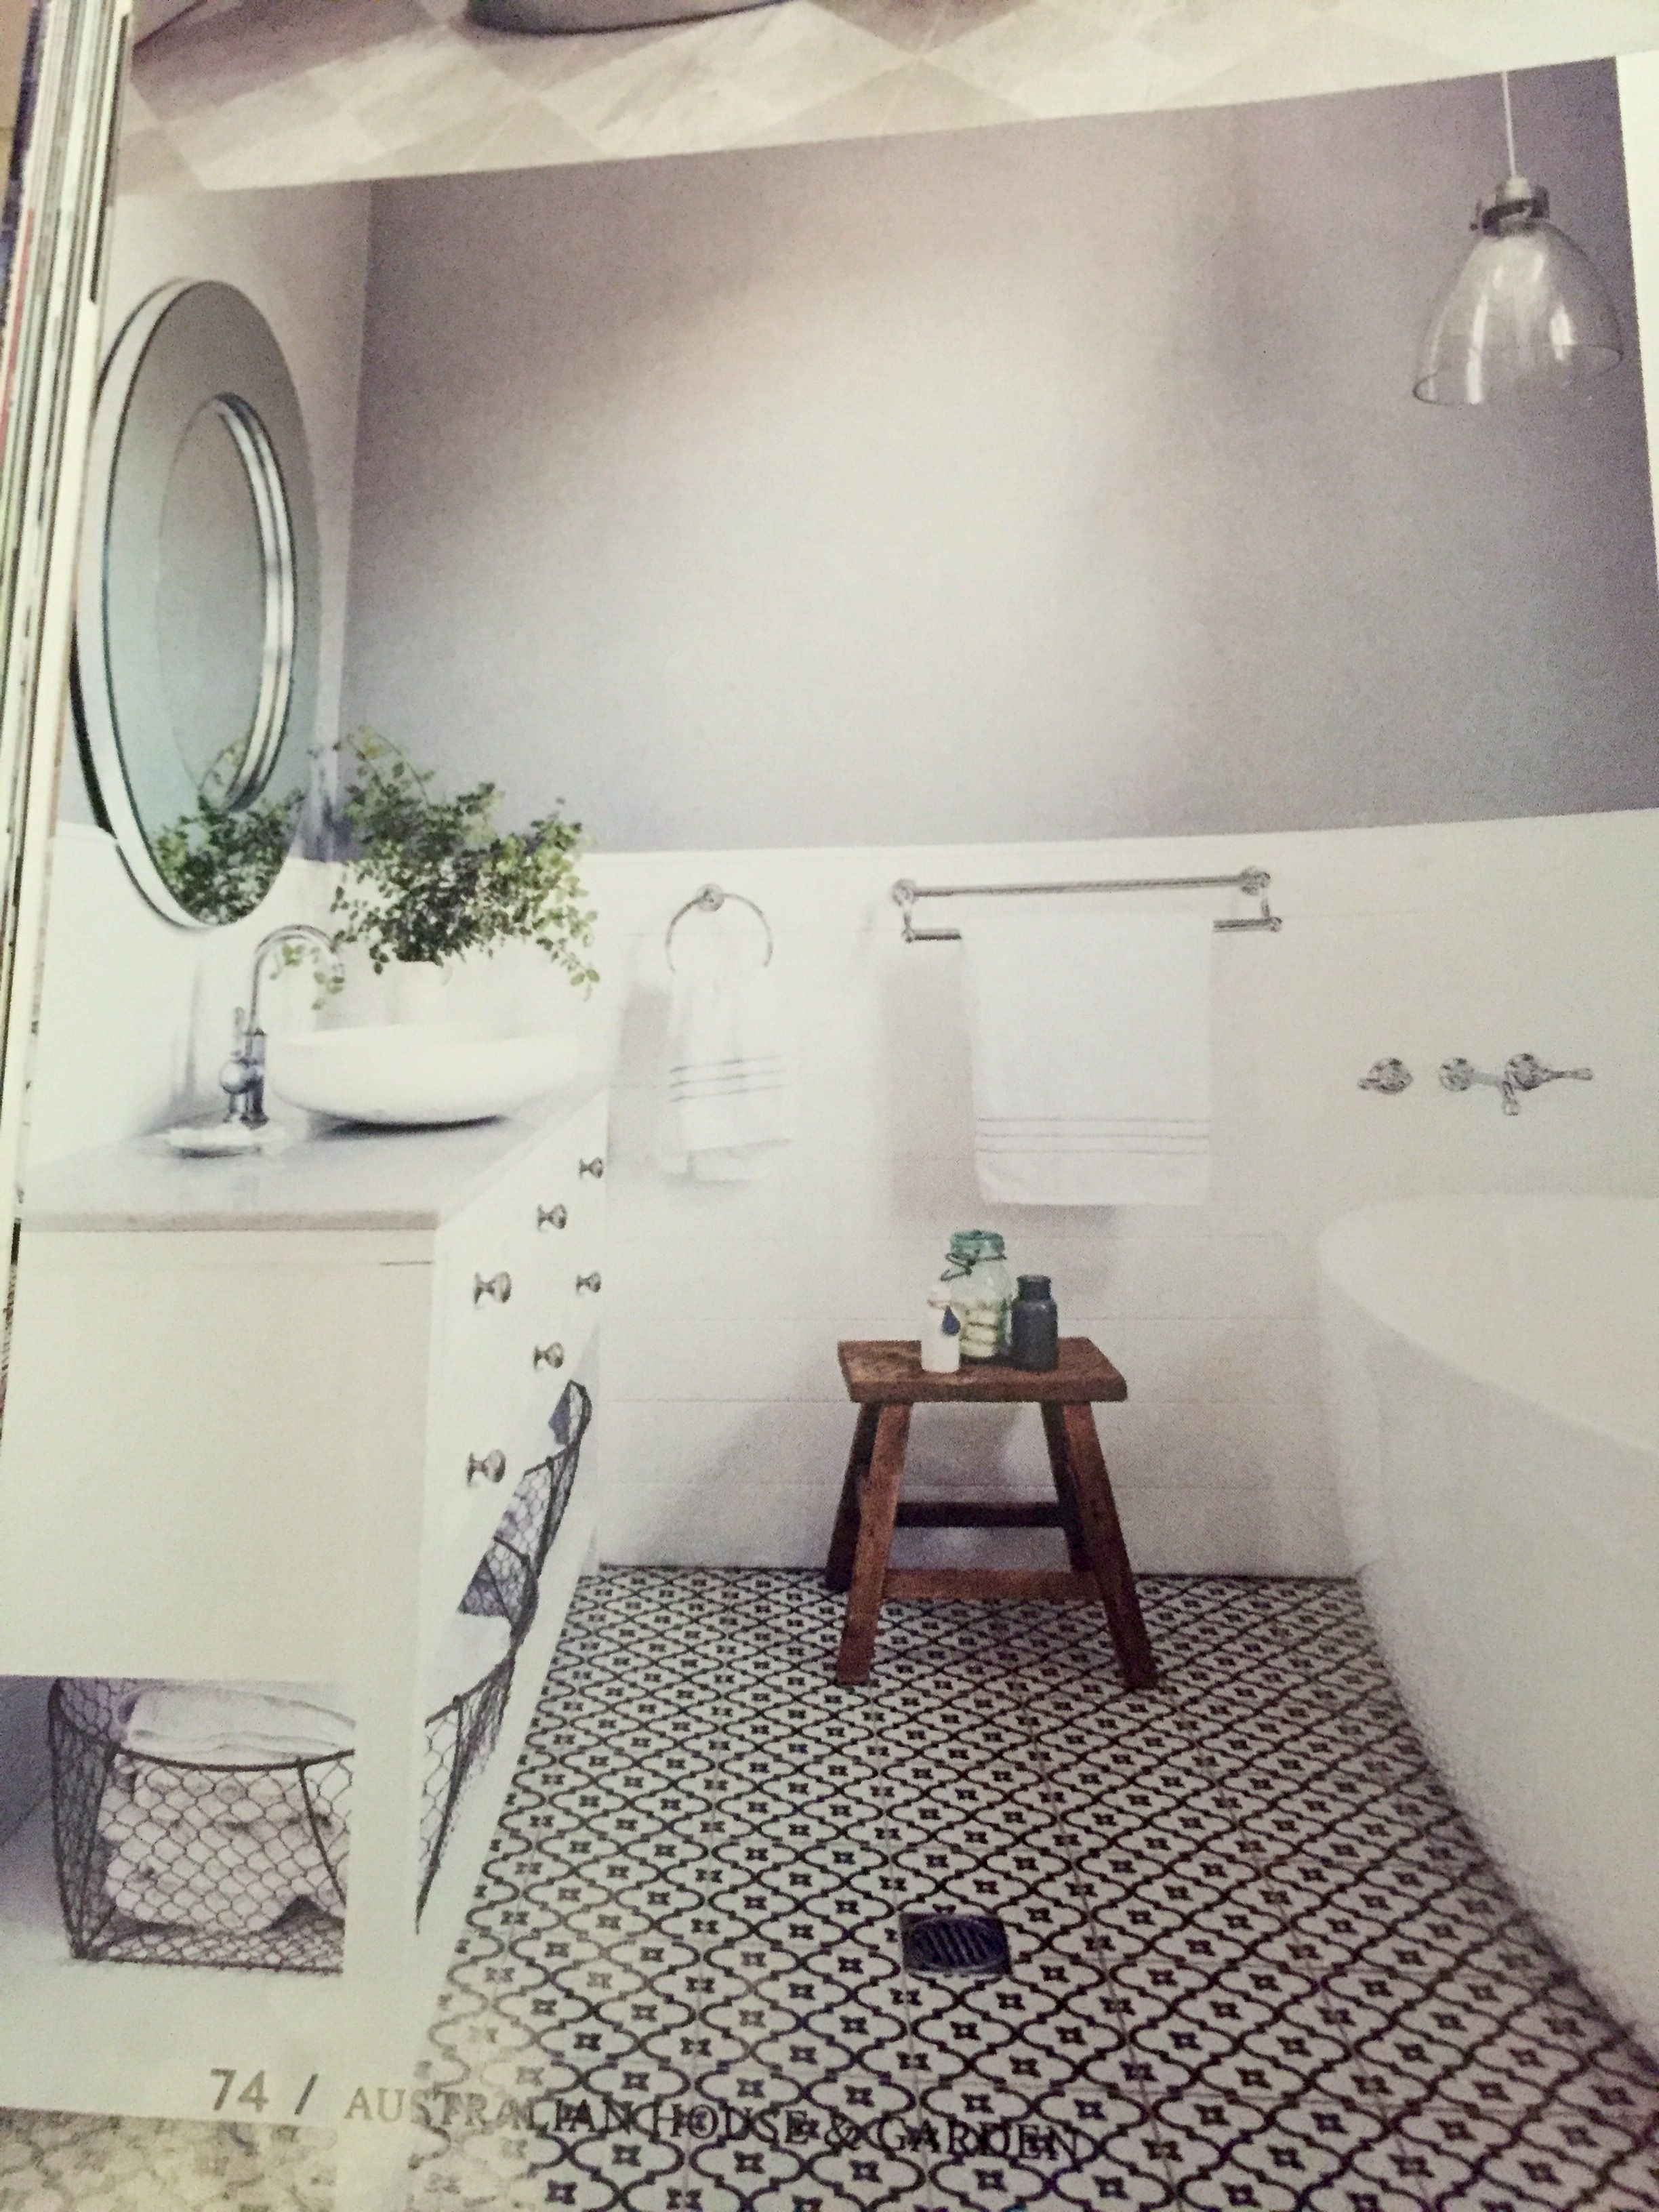 Dulux tranquil retreat for walls and classic black/white tiles and ...